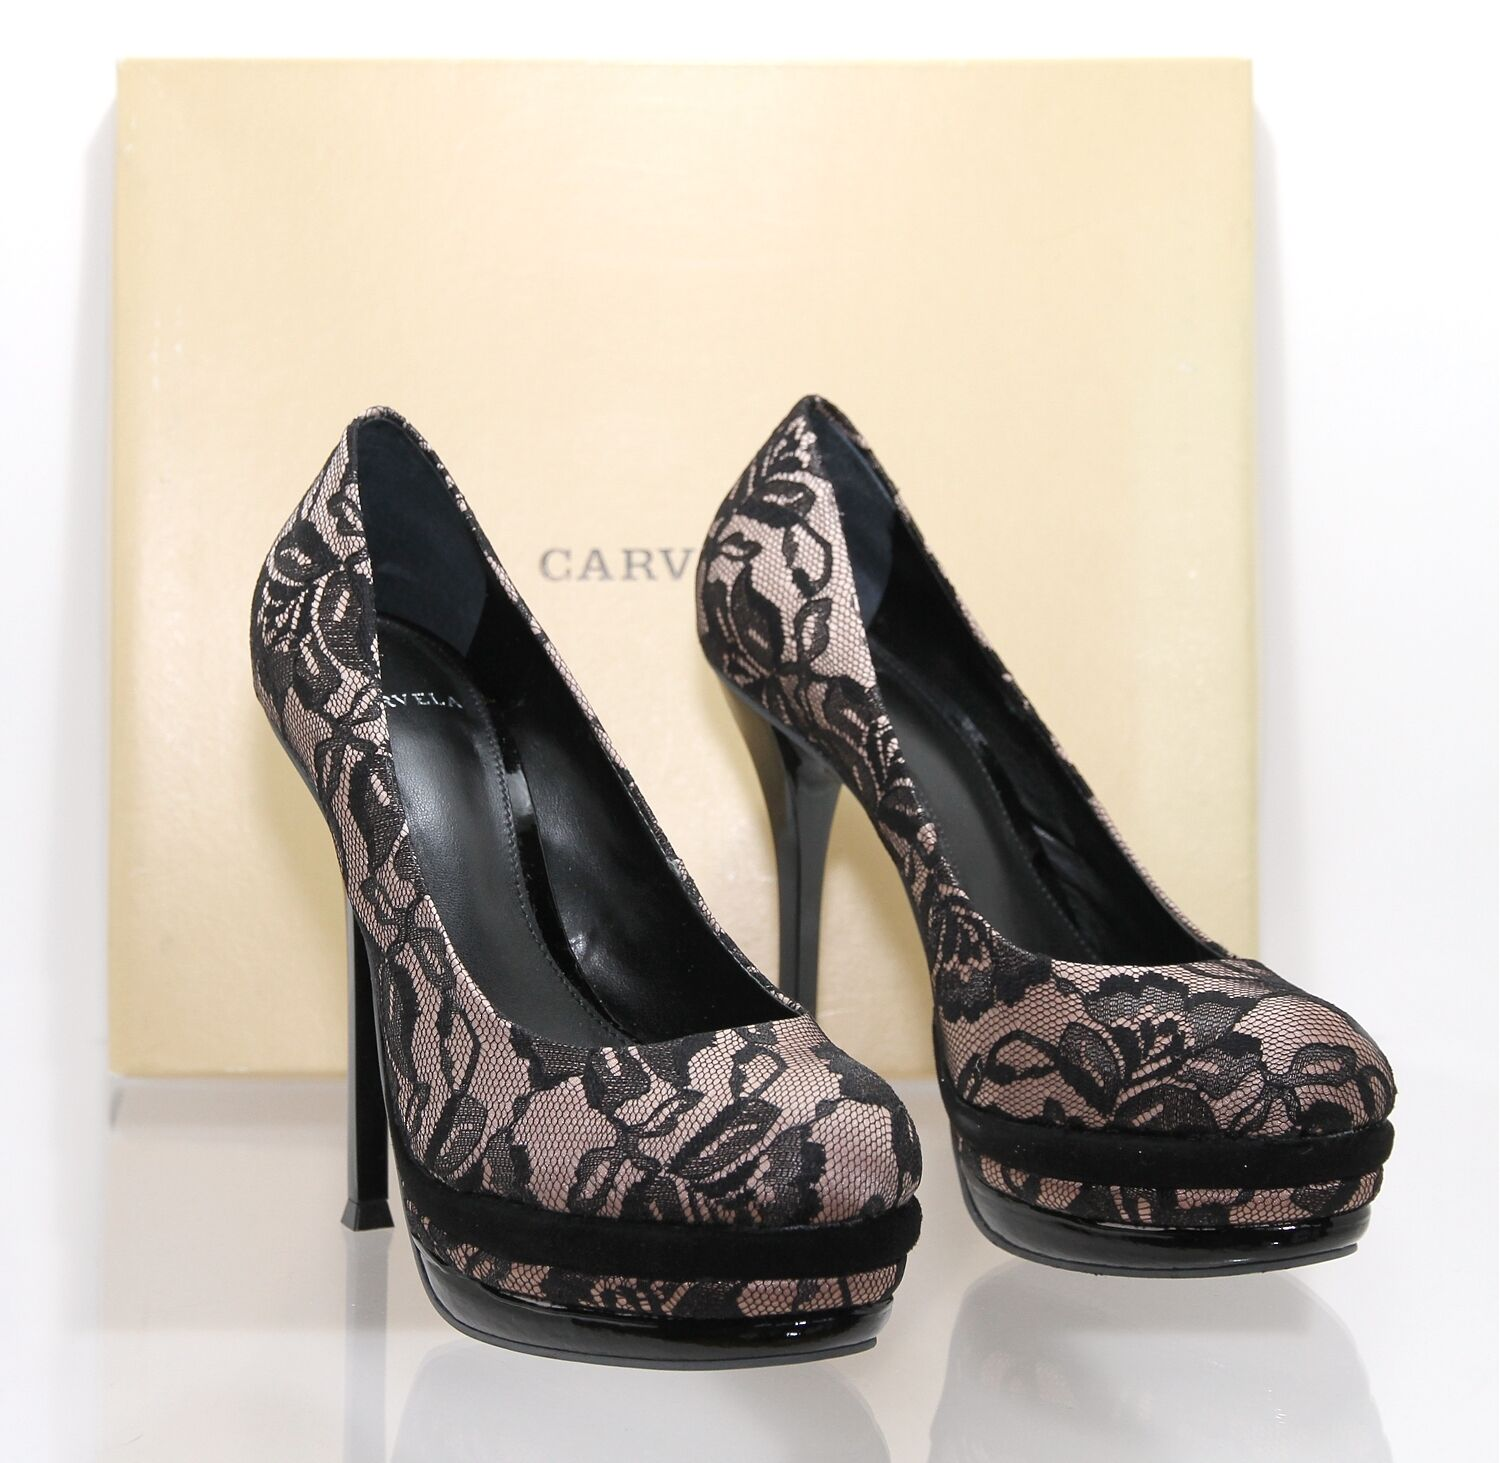 CARVELA ' ARROGANT'  BLACK LACE PLATFORM HIGH HEEL SHOE UK 4 EUR 37 BNIB